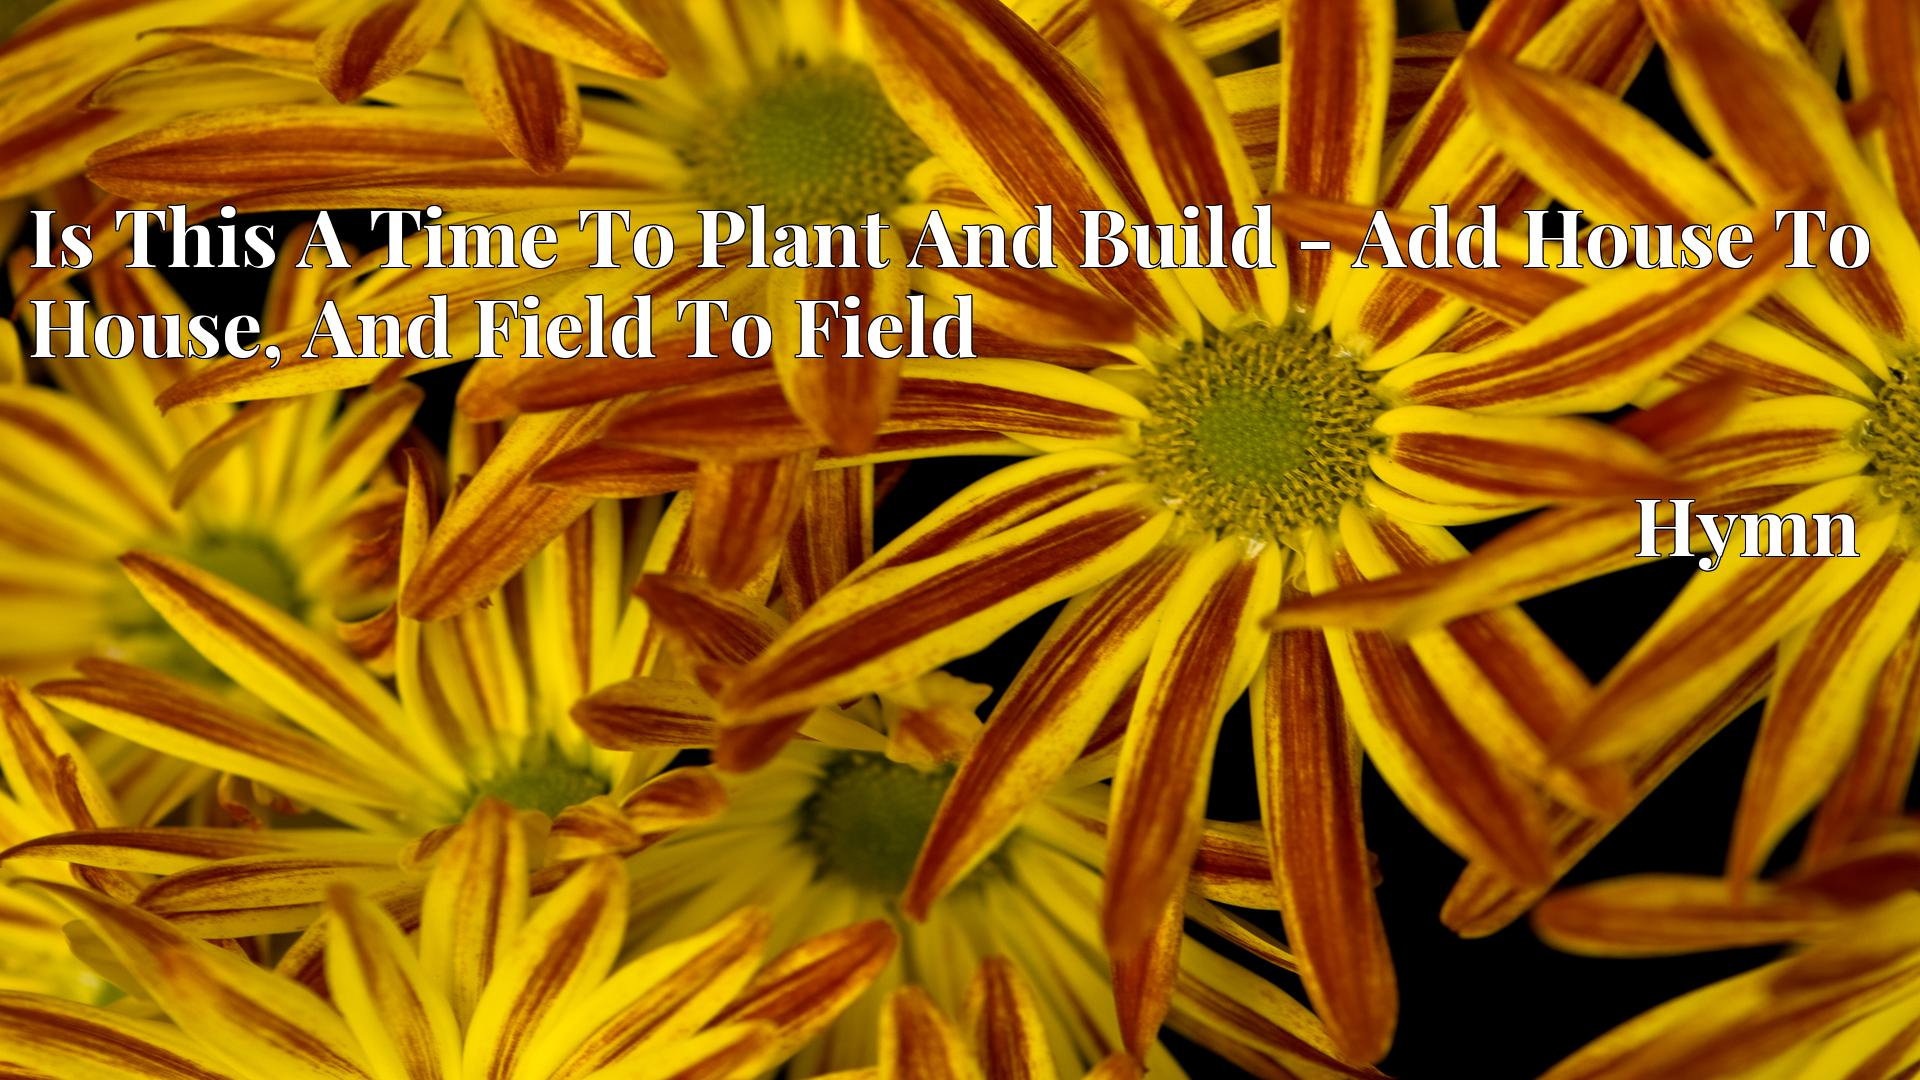 Is This A Time To Plant And Build - Add House To House, And Field To Field - Hymn